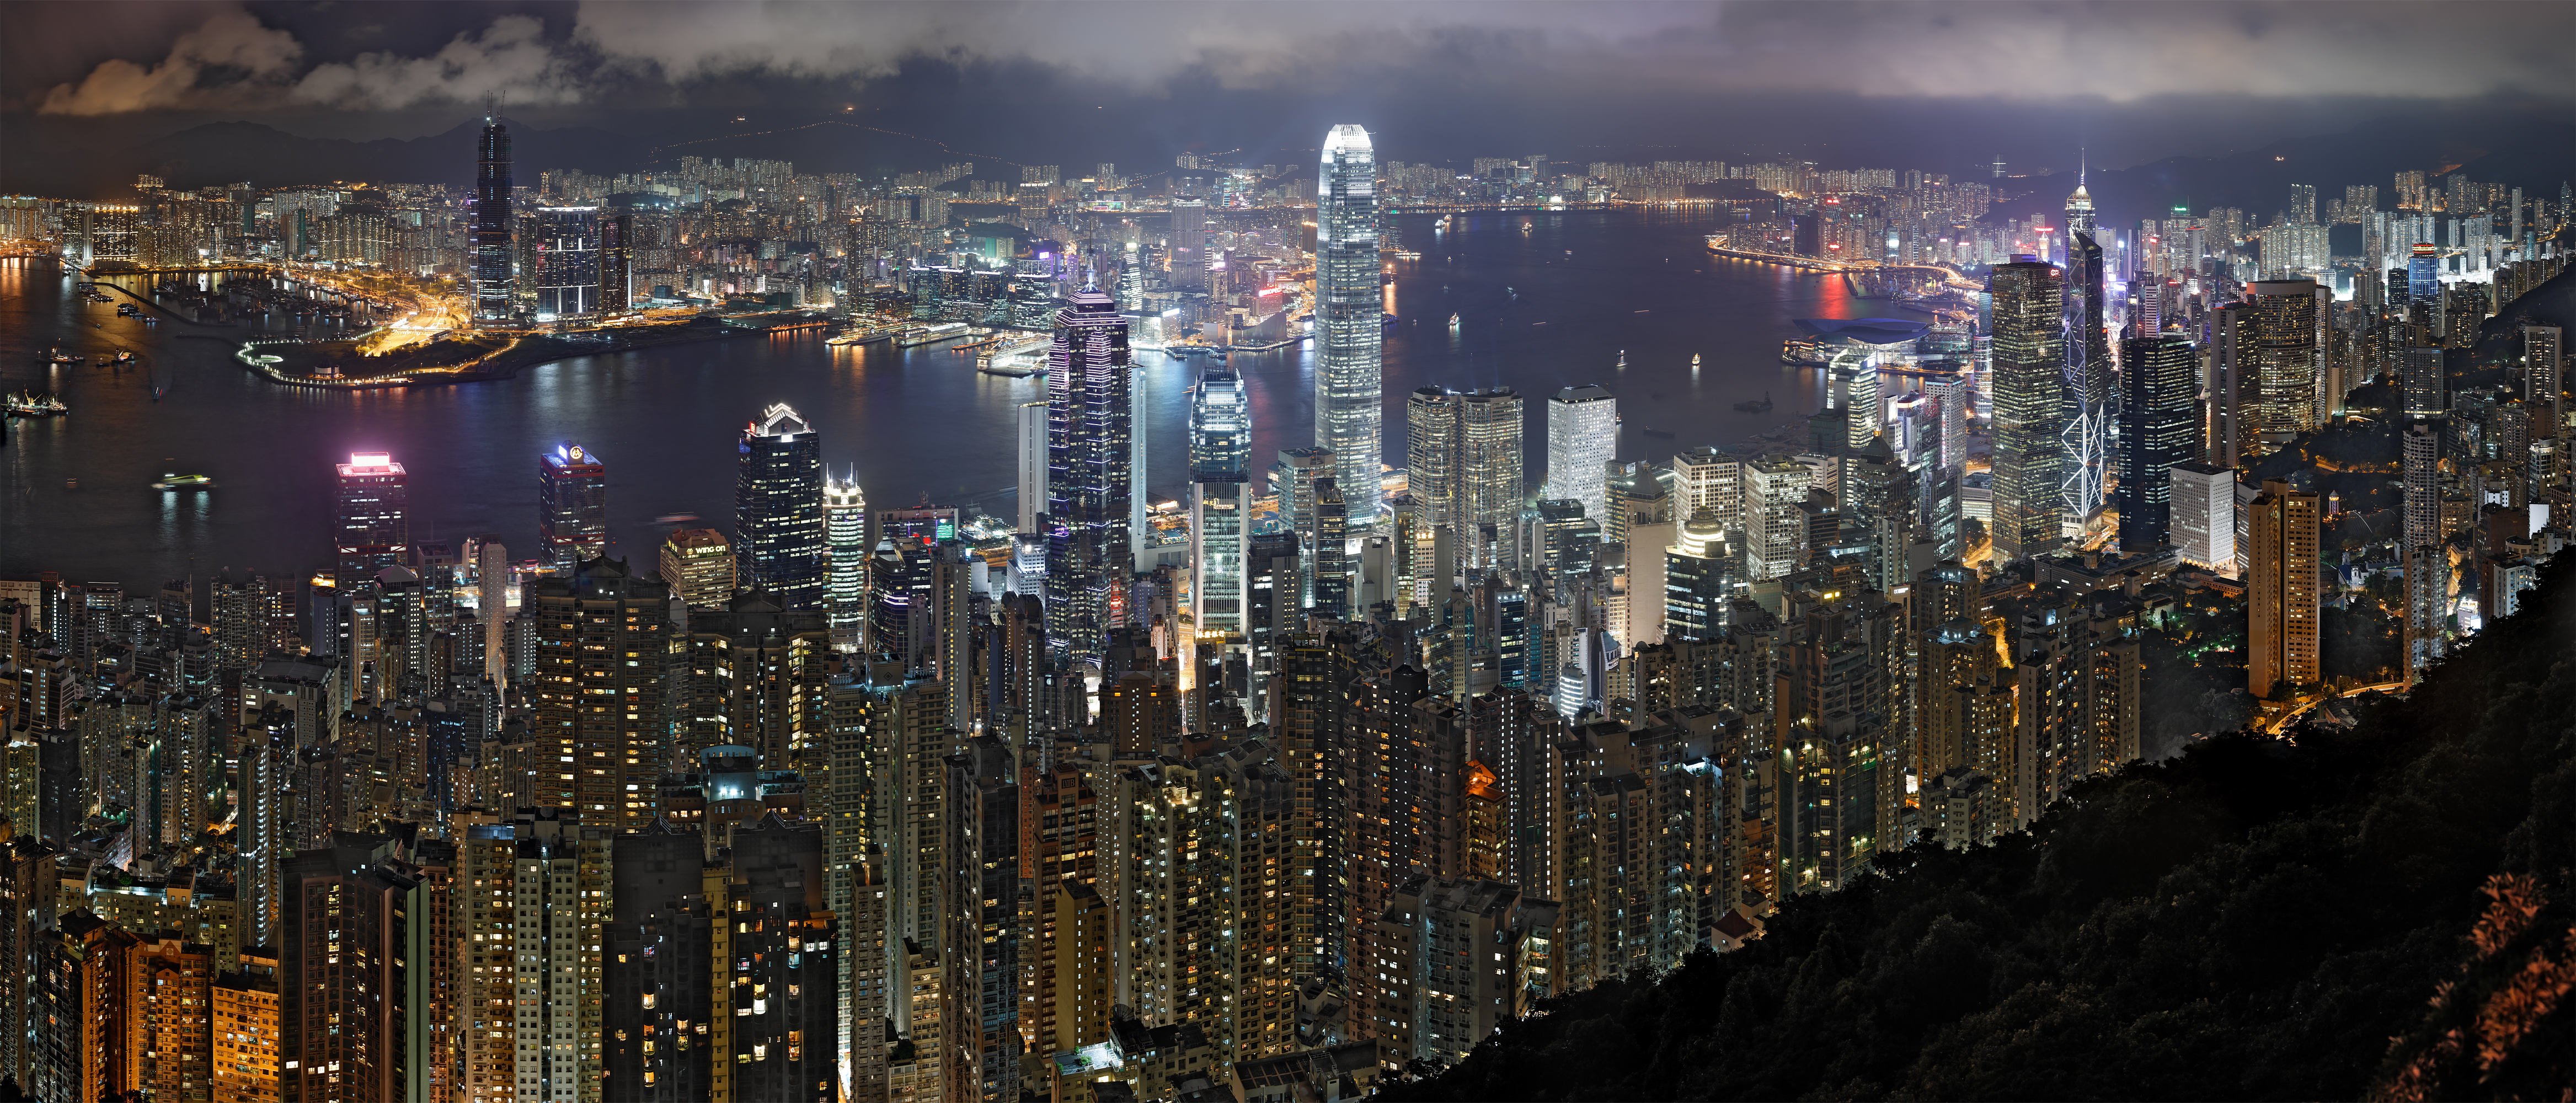 Panorama of the Hong Kong night skyline. Taken from Lugard Road at Victoria Peak. Von Base64 - Eigenes Werk, CC BY-SA 3.0, https://commons.wikimedia.org/w/index.php?curid=4235760